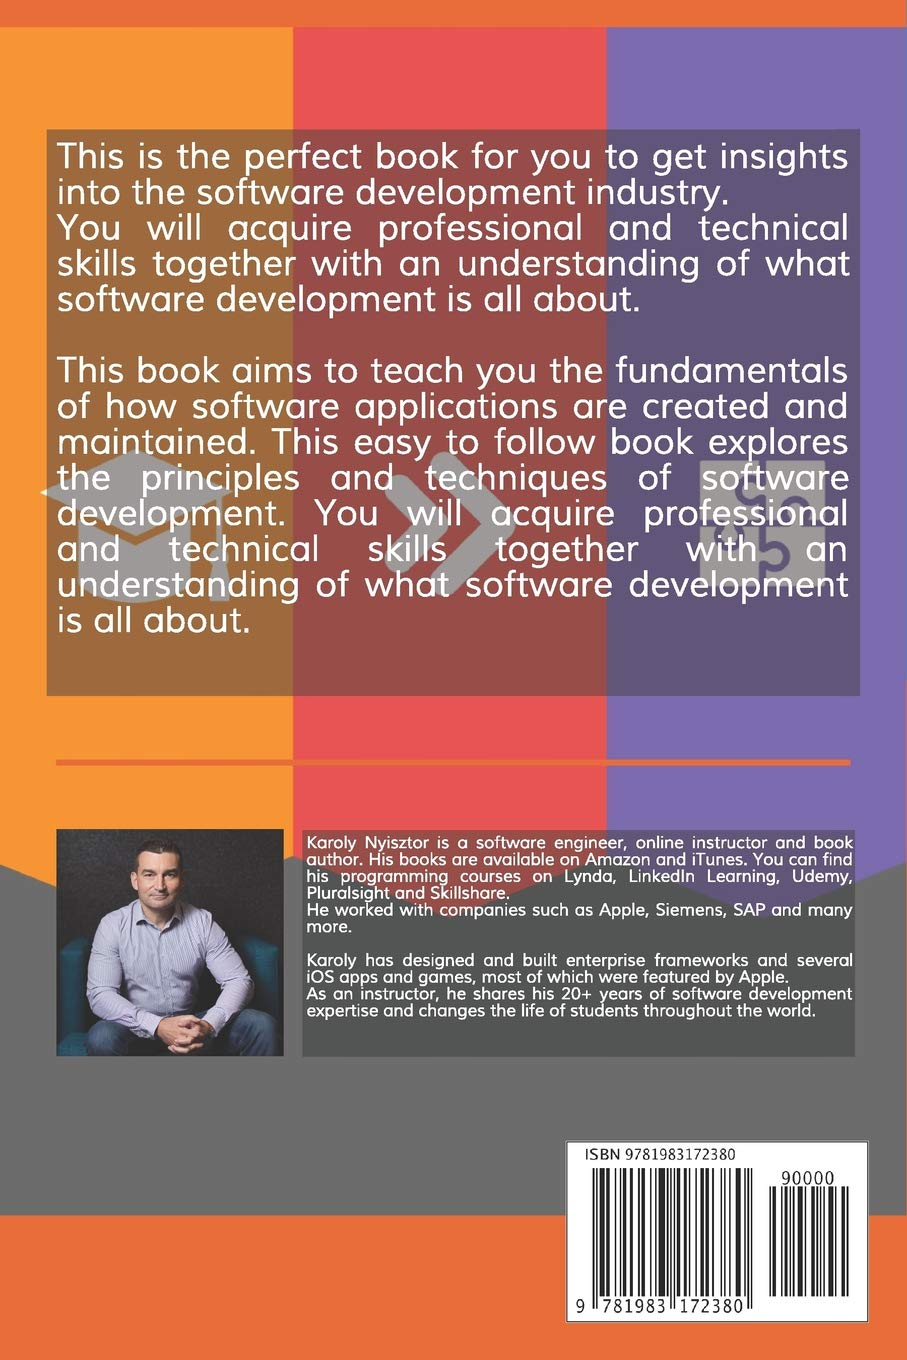 Software Development from A to Z: Learn about OOP, UML, Agile